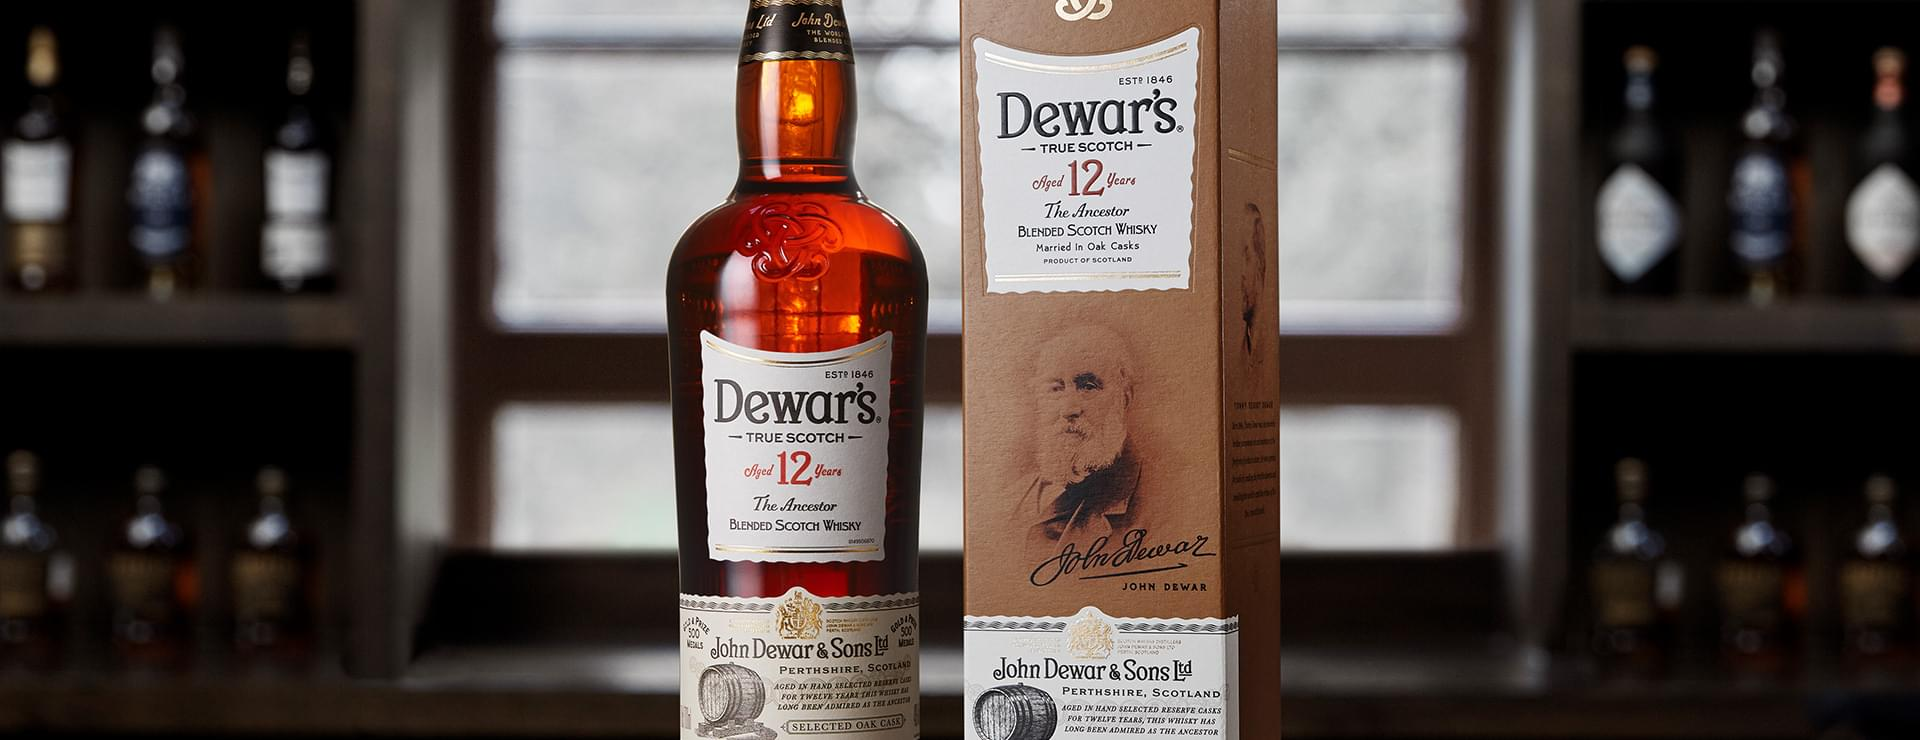 Dewar's 12 year old blended Scotch whisky at Dewar's Aberfeldy Distillery